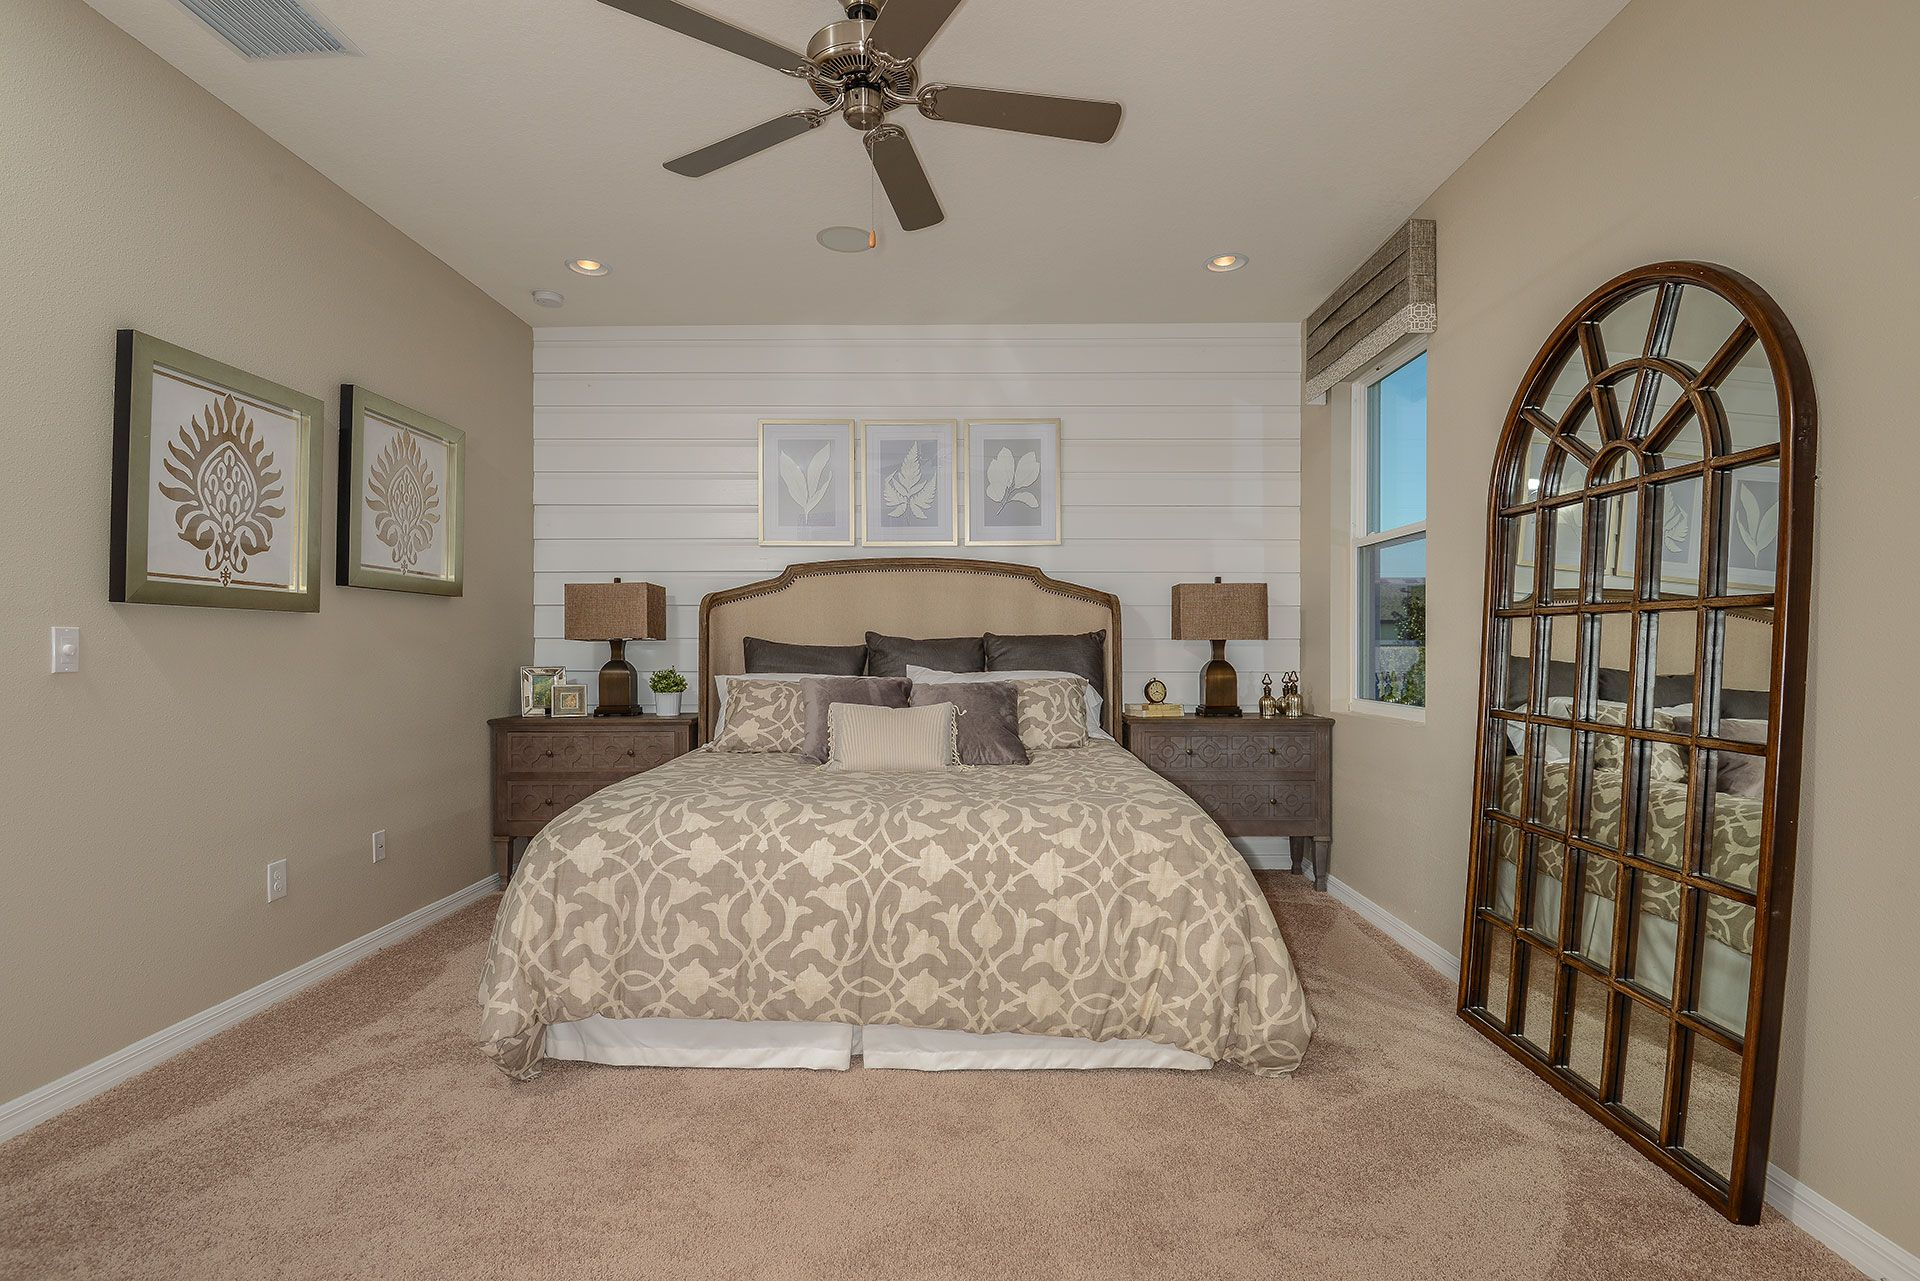 The Granville By Dr Horton View This Model Home In Waterset By Newland Communities In Apollo Beach Fl Home Model Homes New Homes